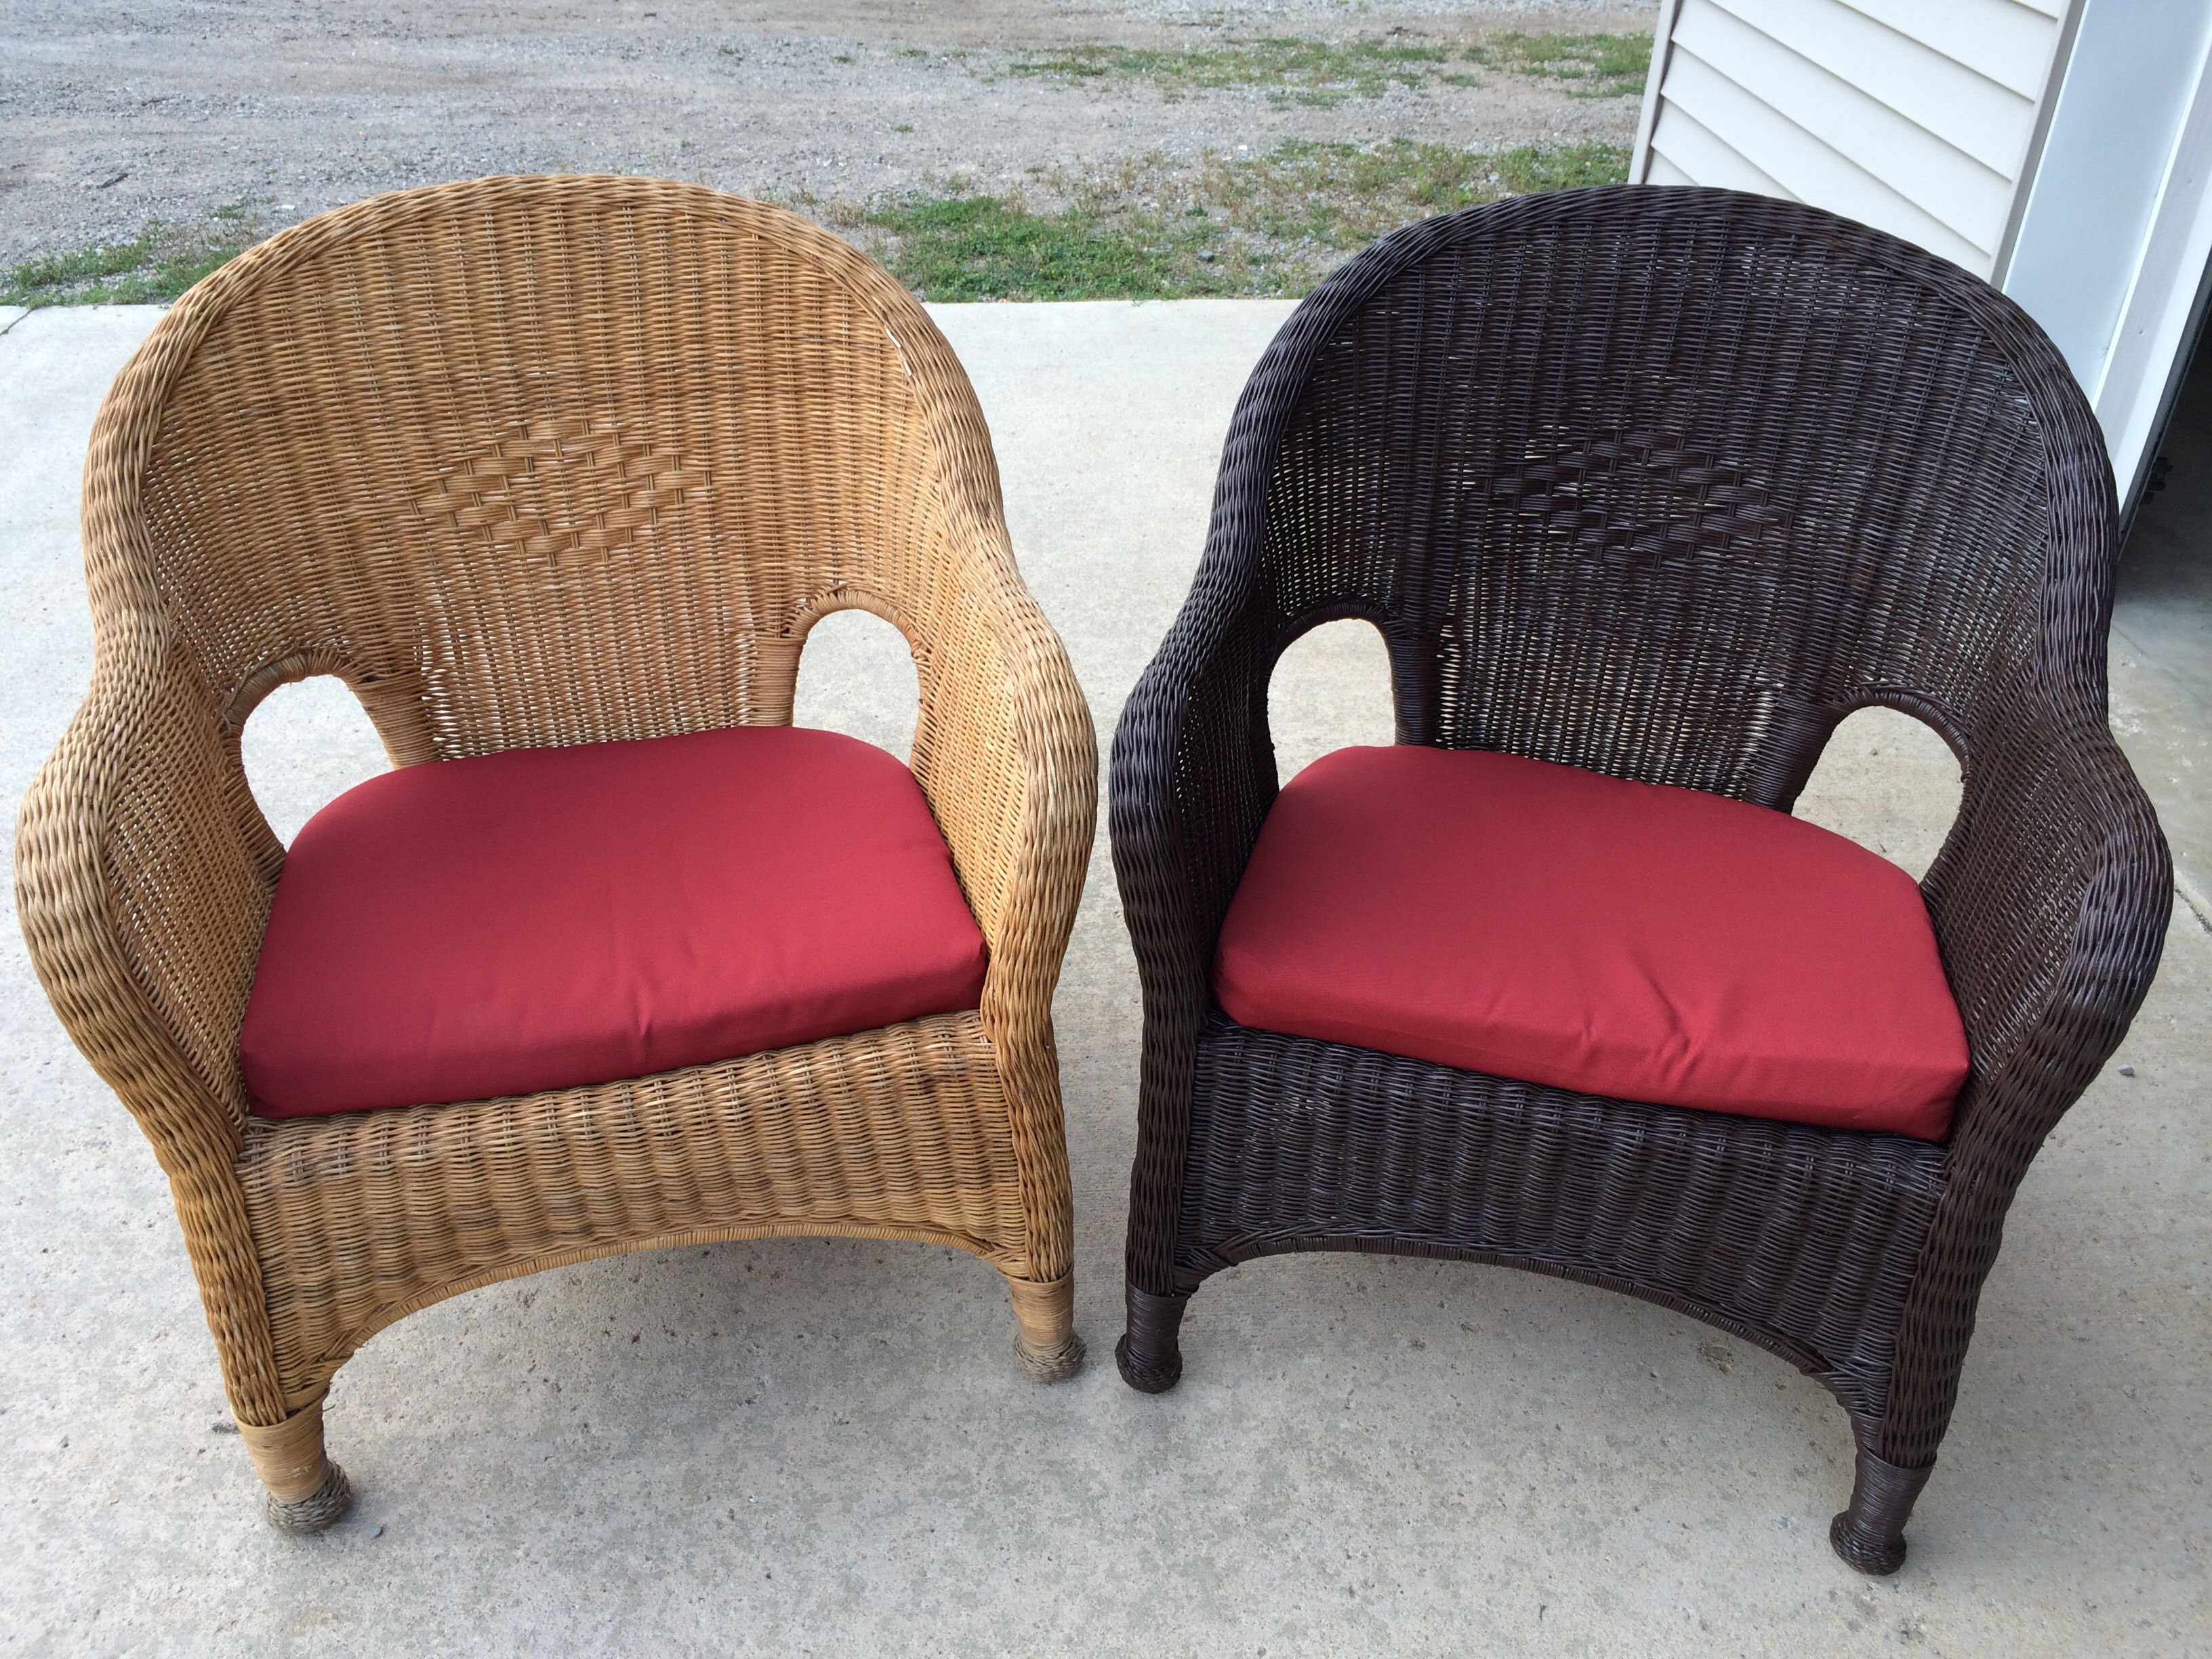 Spray Painting Wicker Patio Furniture And